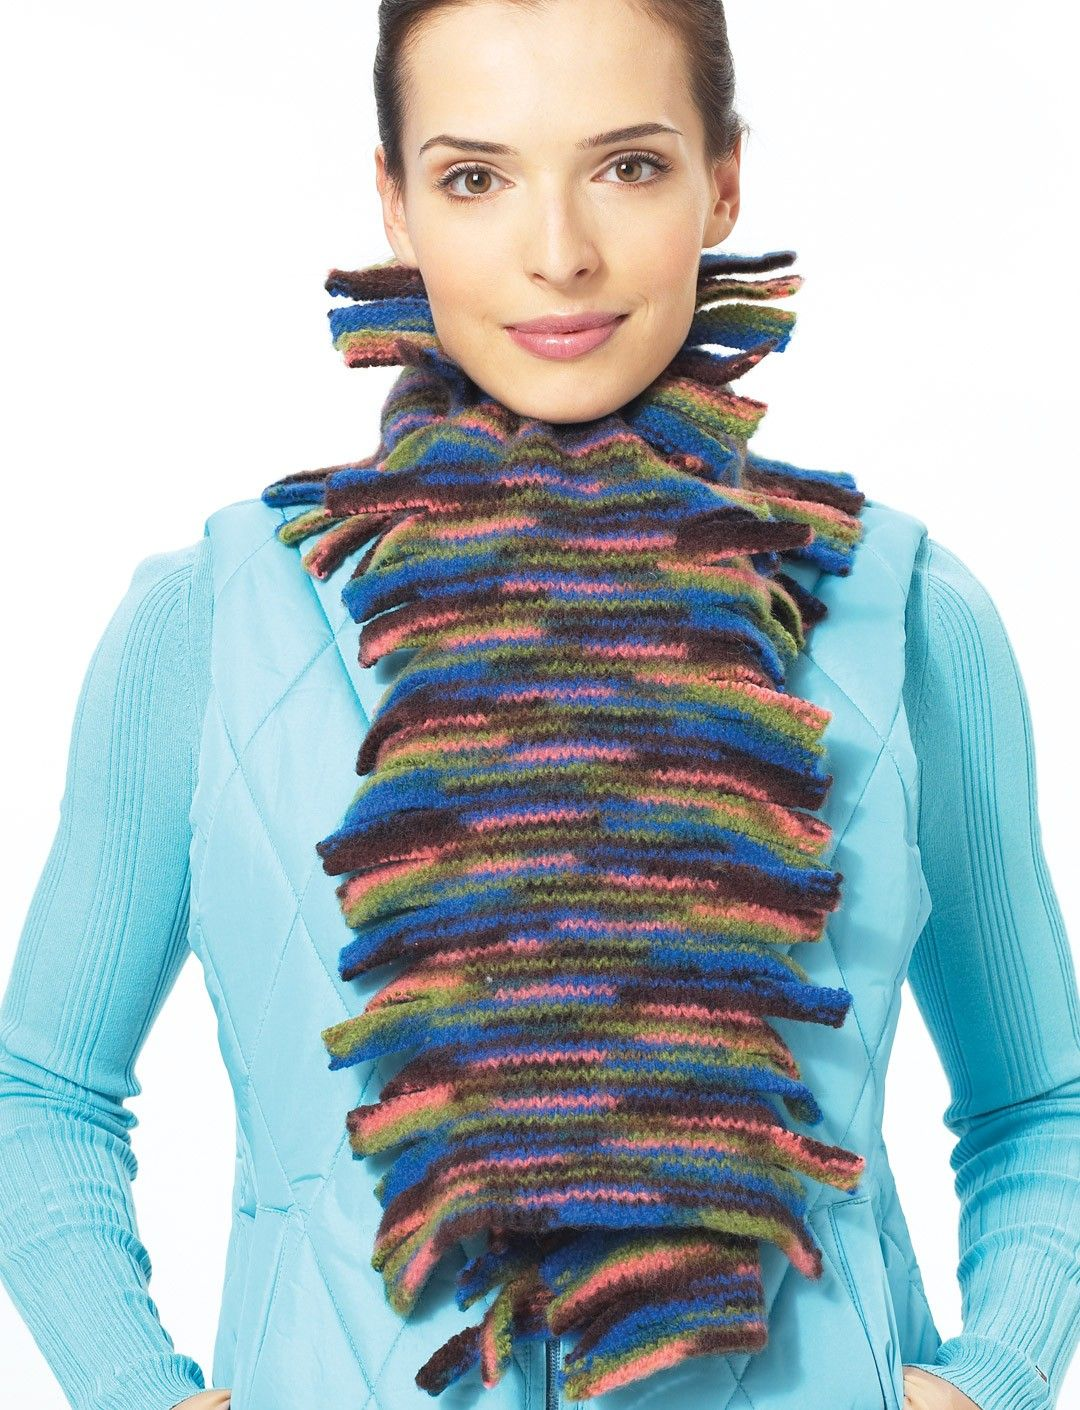 Yarnspirations.com - Patons Felted Fringed Scarf - Patterns ...